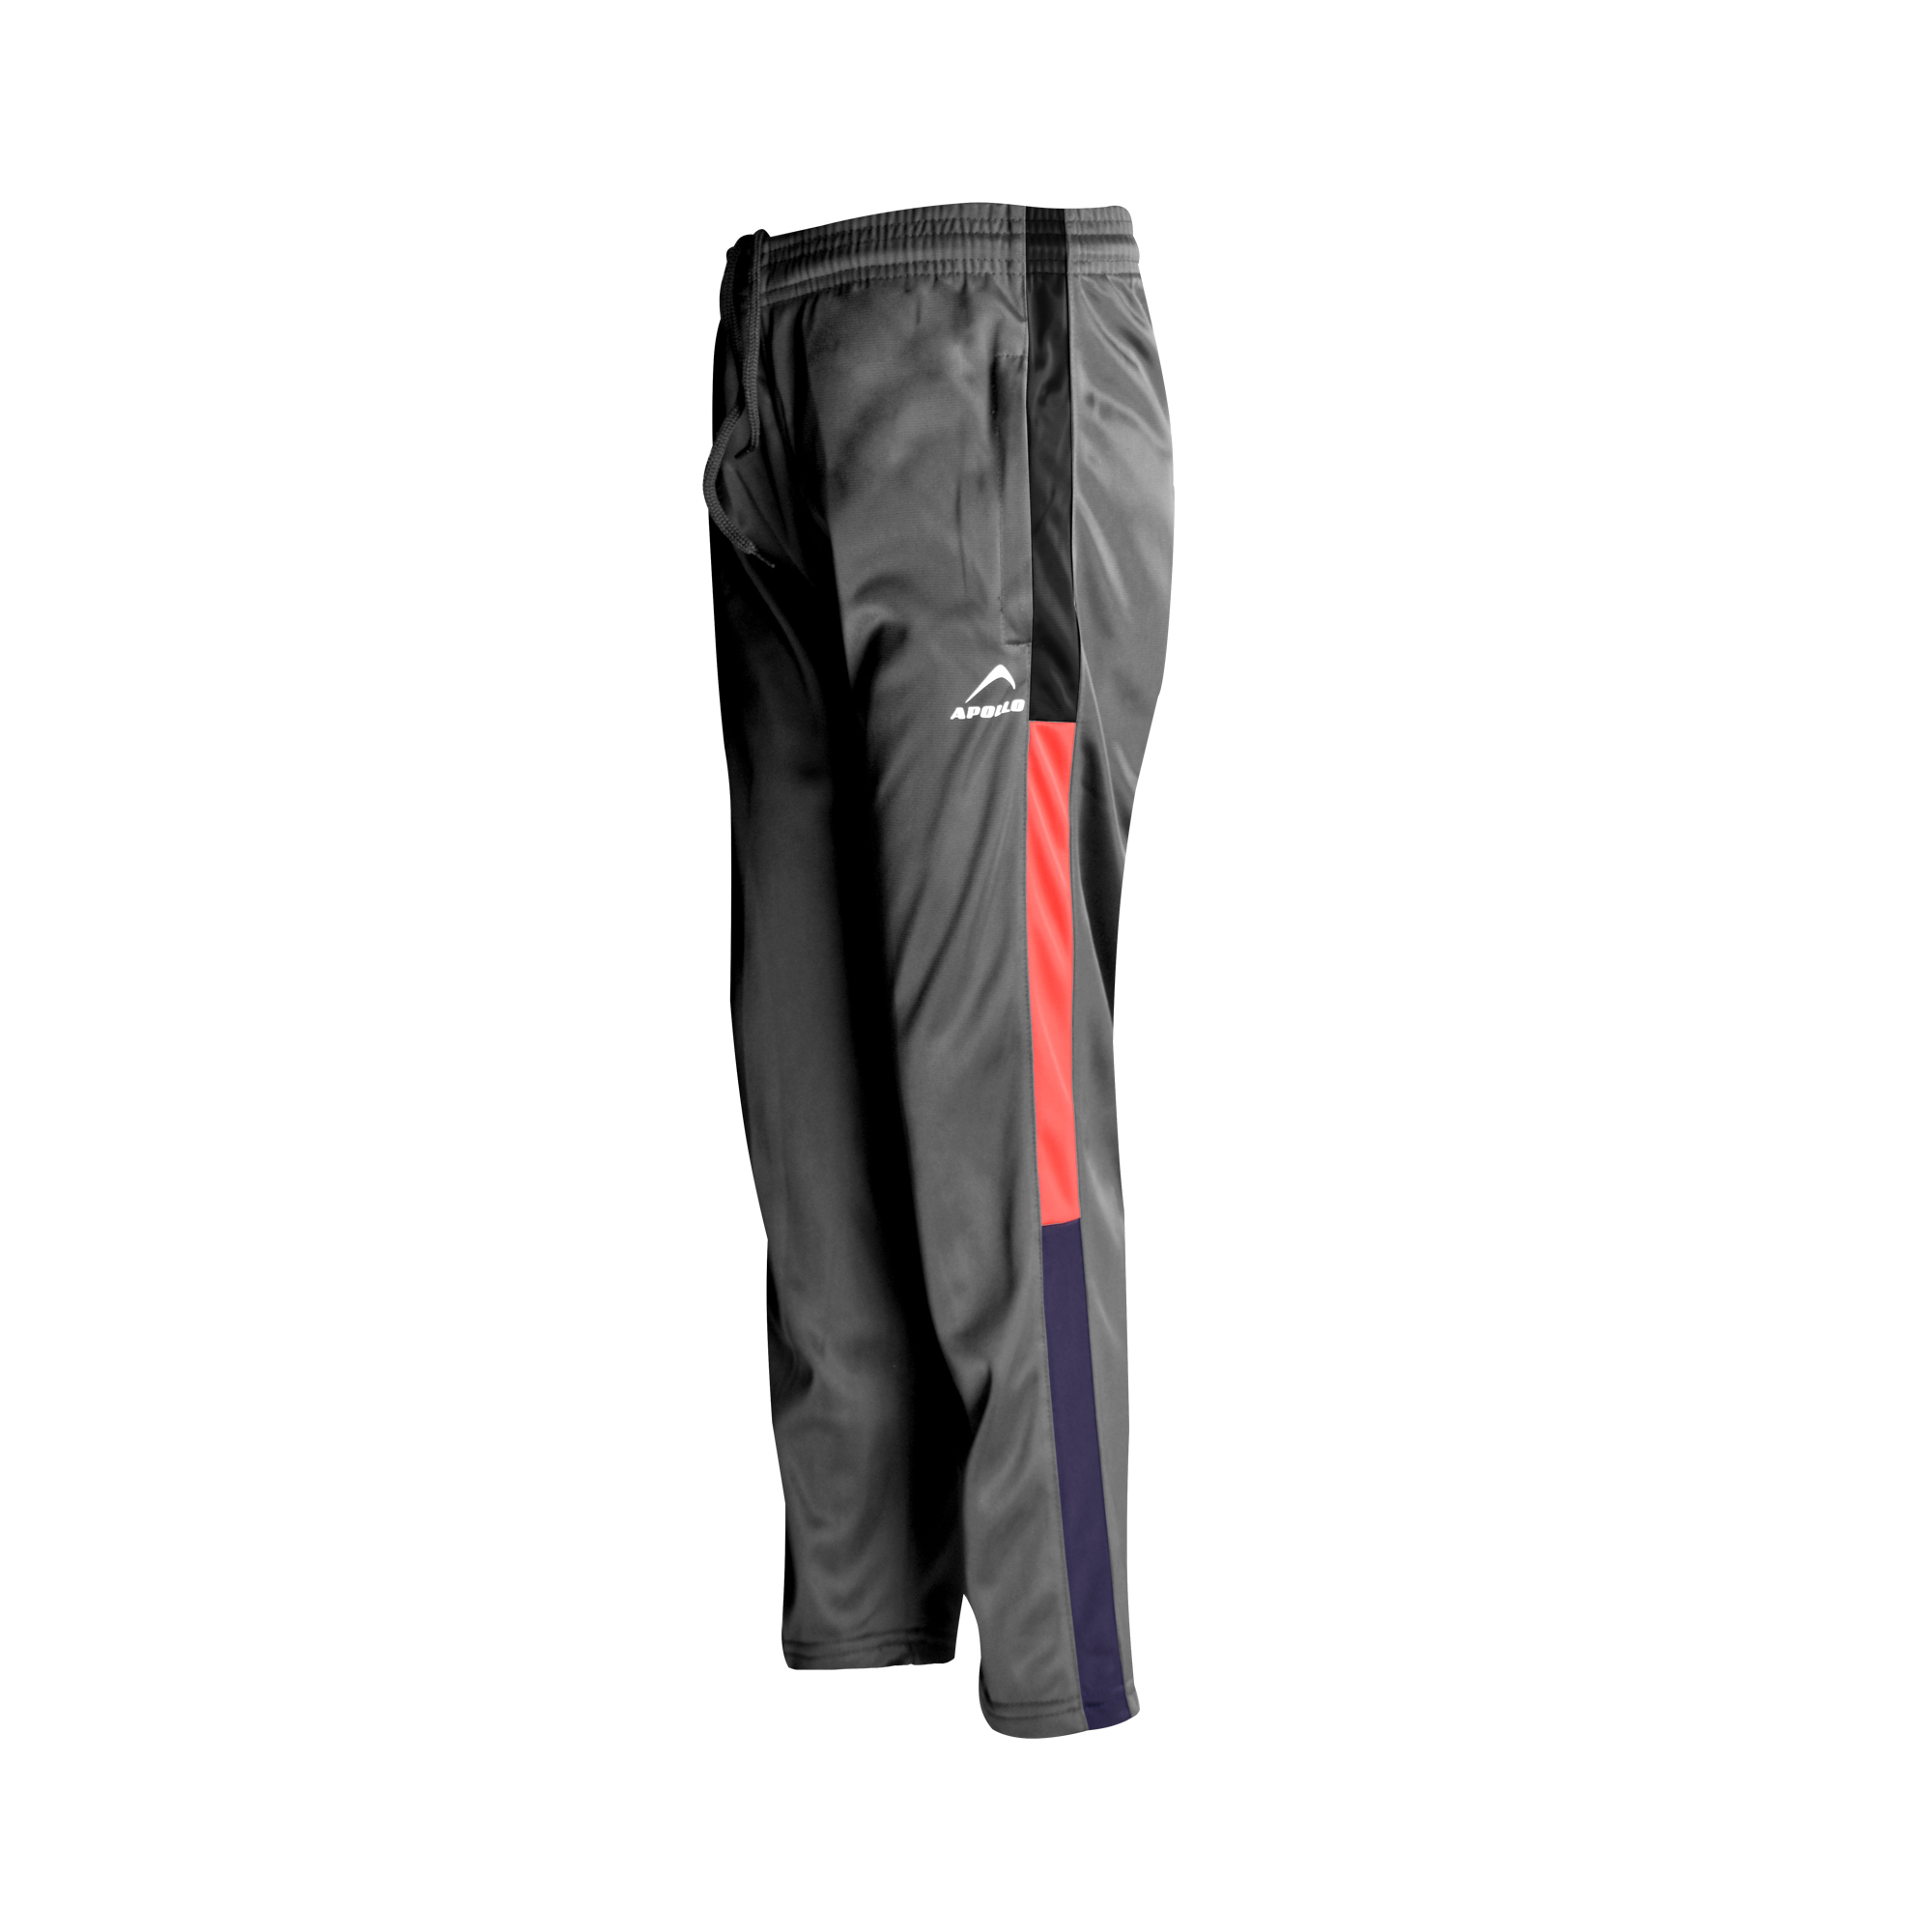 BOYS SPORTS CASUAL RUNNING TRAINING TRICOT TRINDA TROUSER PANT WINTER 19 APOLLO 93B211 - DARK GRAY